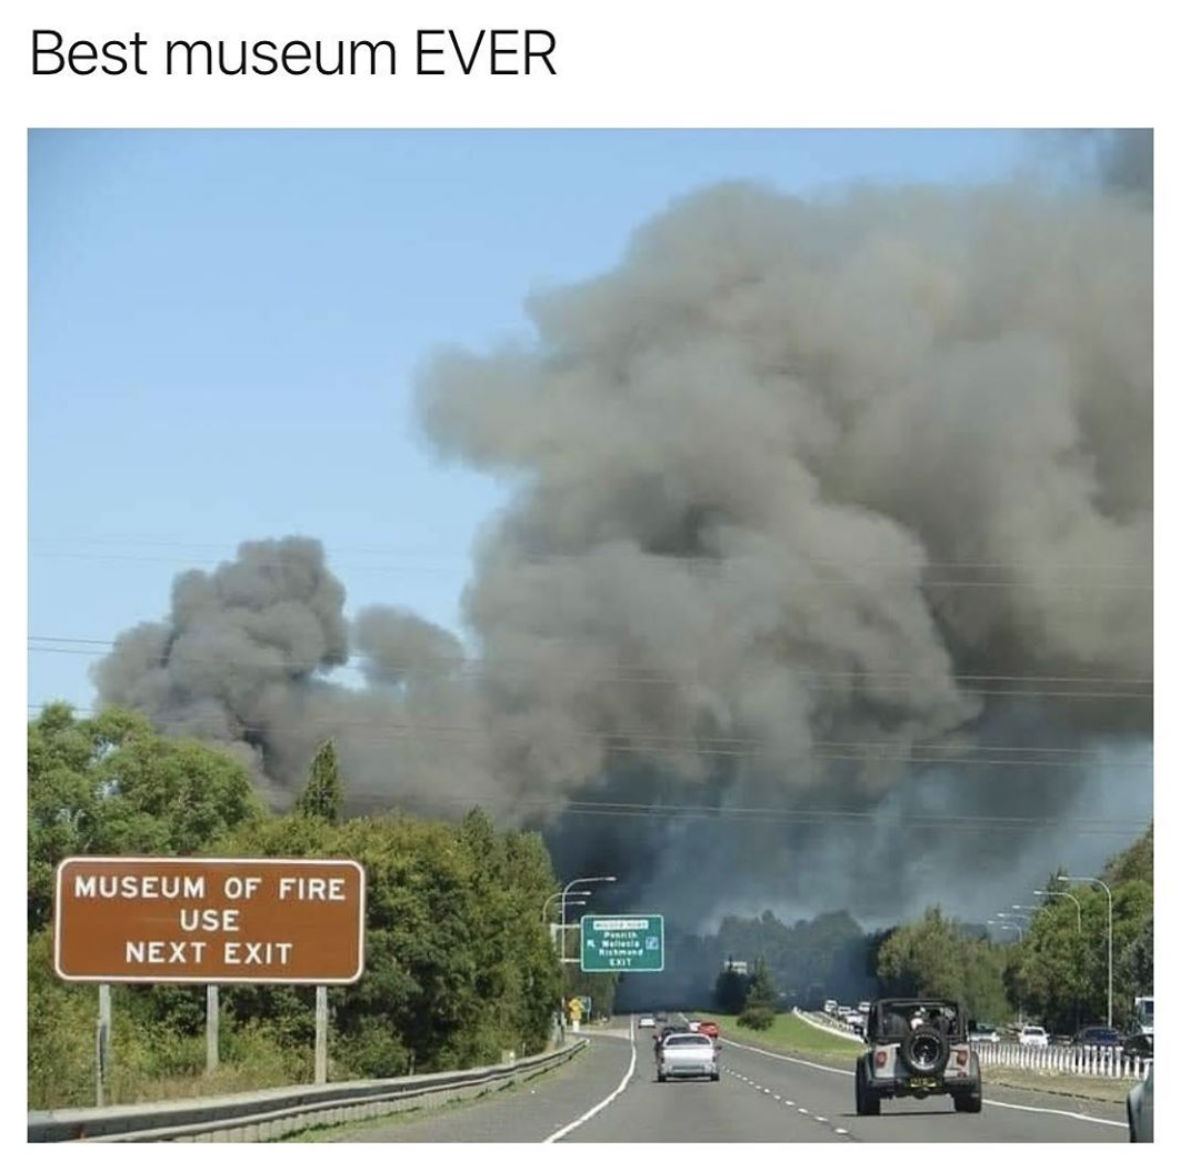 museum of fire use meme